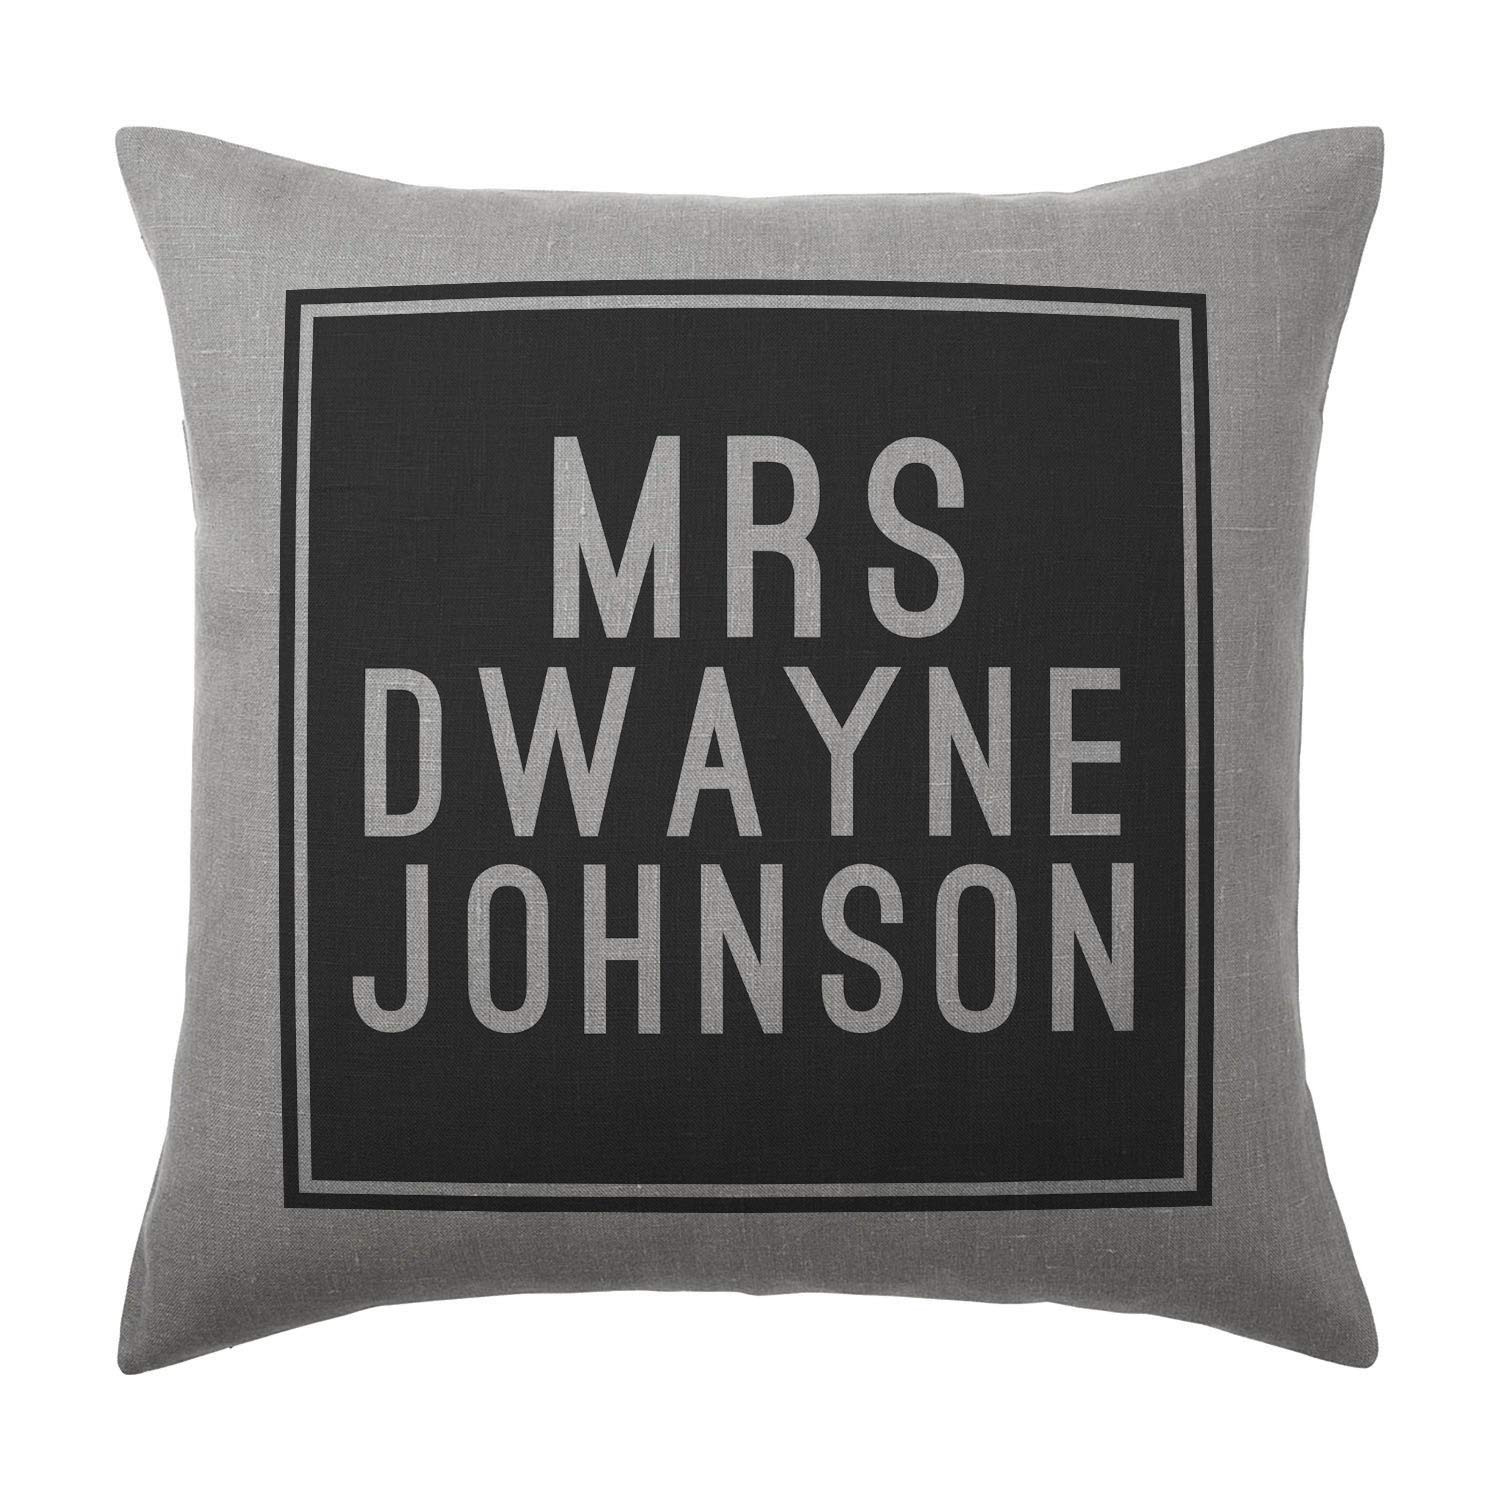 Dwayne Johnson Cushion Pillow - Silver Grey - 100% Cotton - Available with or without filling pad - 40x40cm (Cover and filling pad) The Stocking Fillers